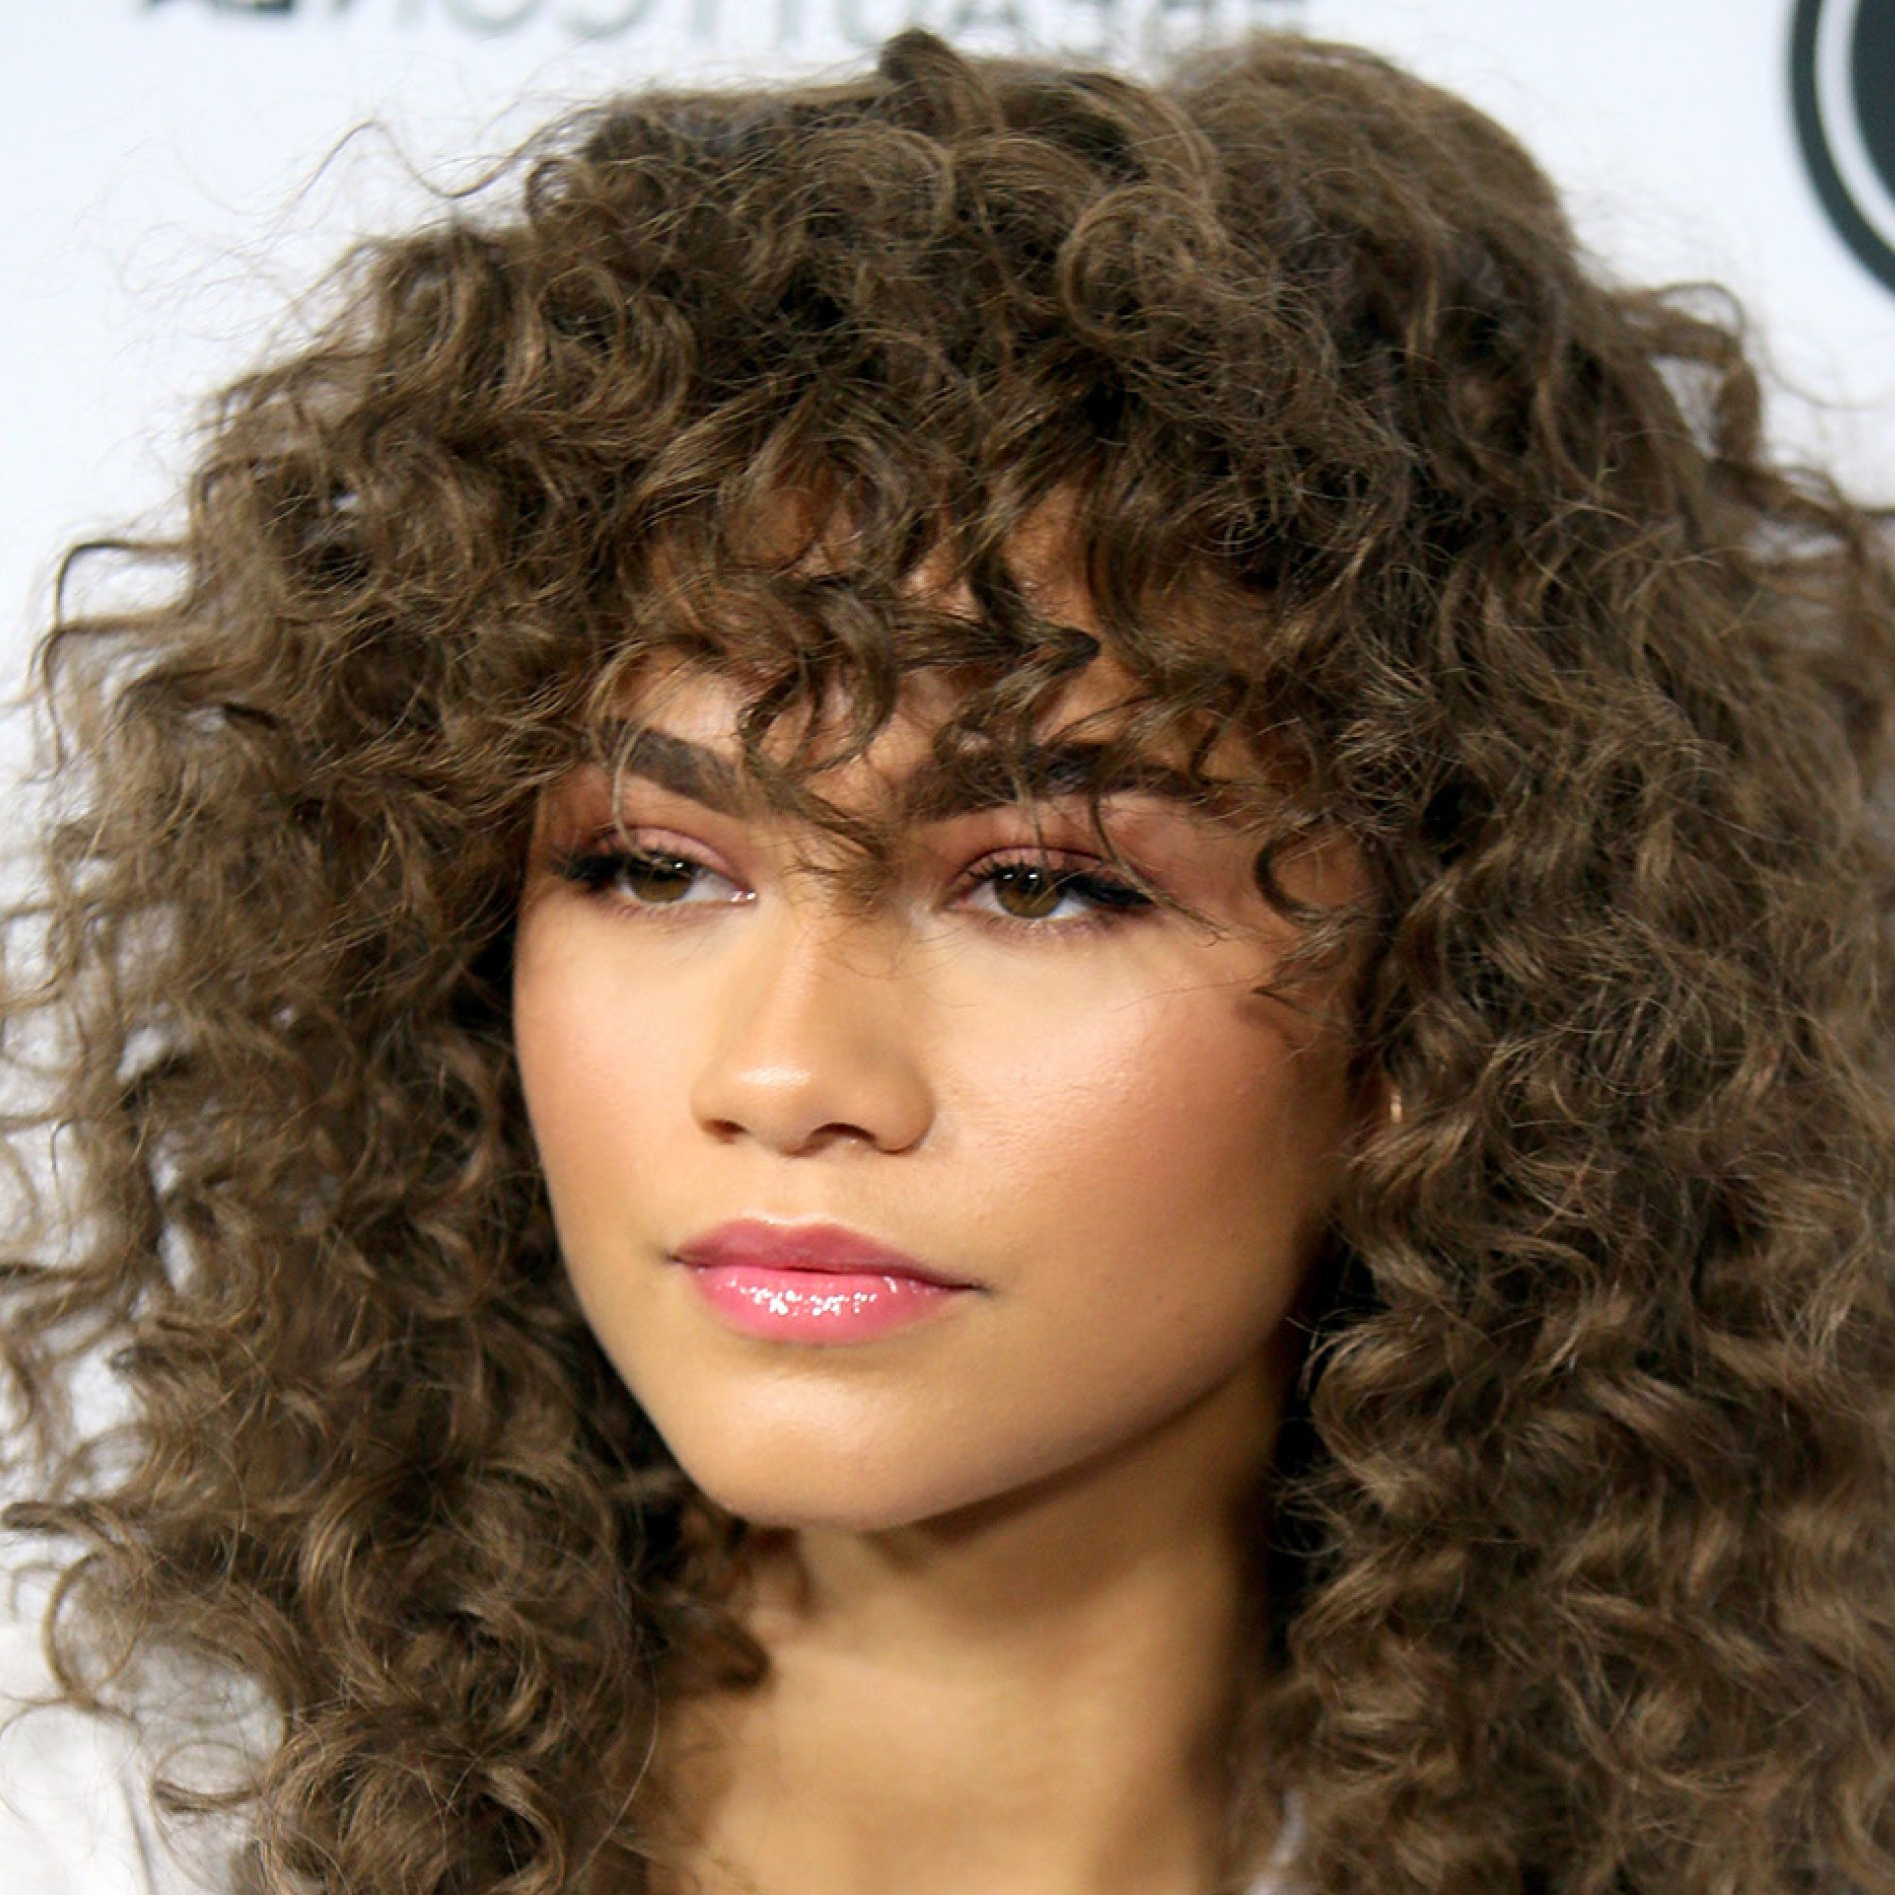 Fresh Short Curly Hairstyles For Round Faces – Wheretobuystamps Regarding Curly Hairstyles For Round Faces (Gallery 19 of 20)